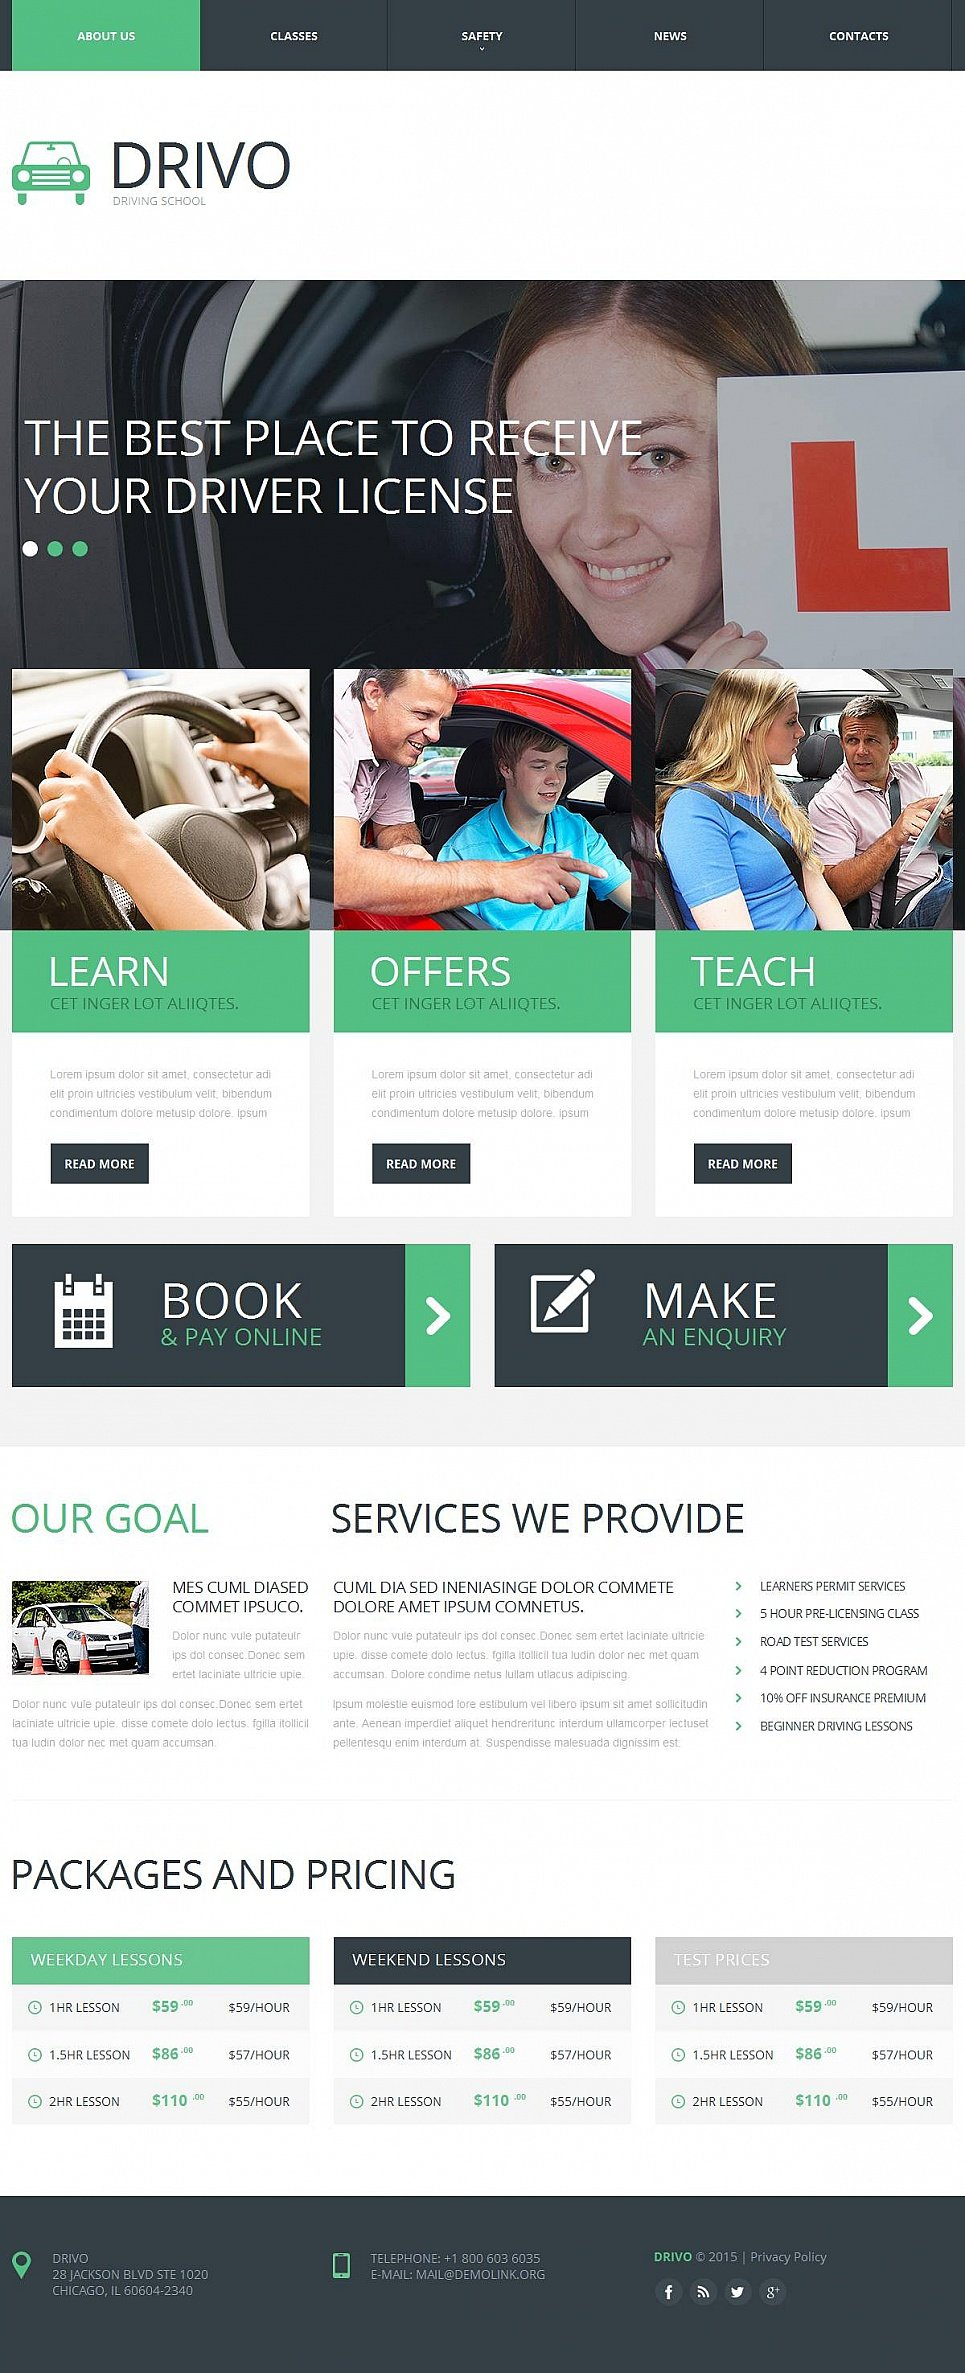 Driving Training Website Design - image